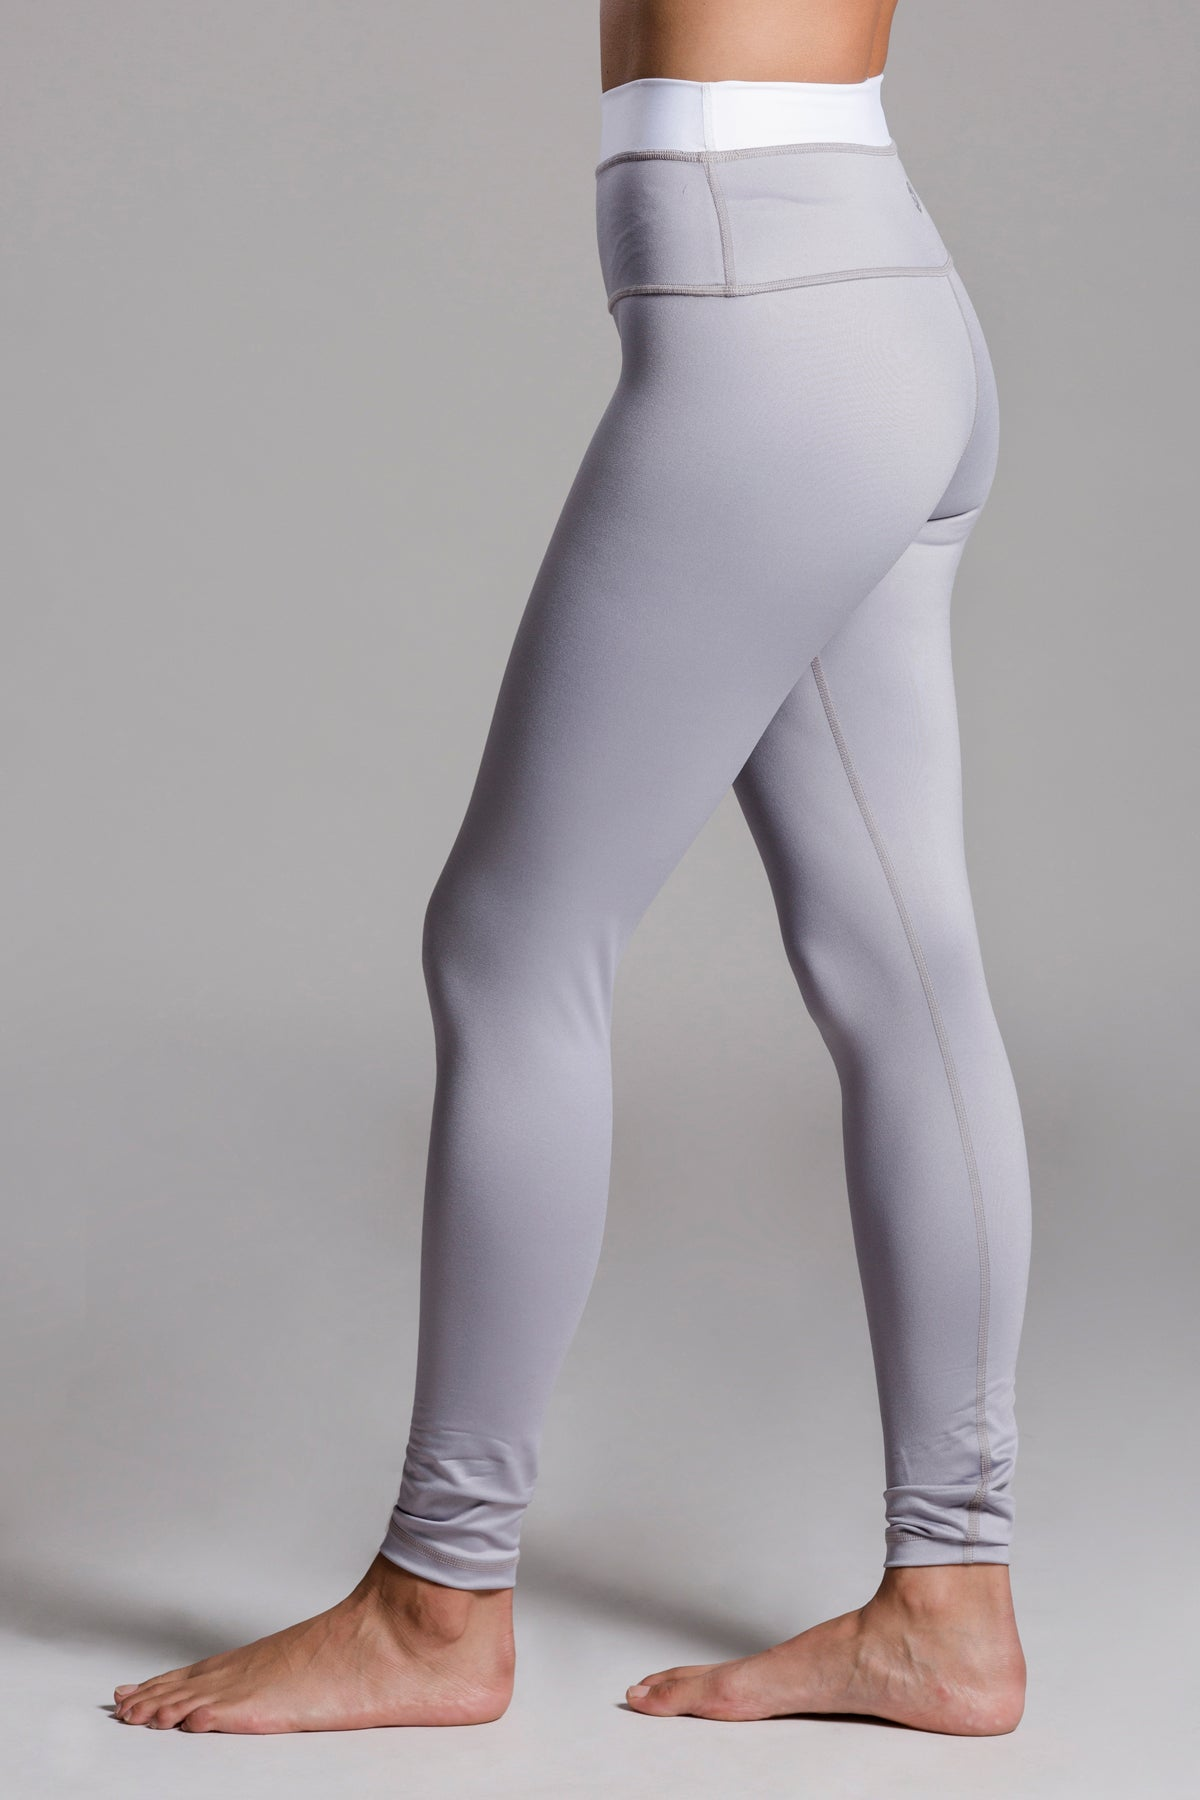 The Due Basic Gray For Body Barre